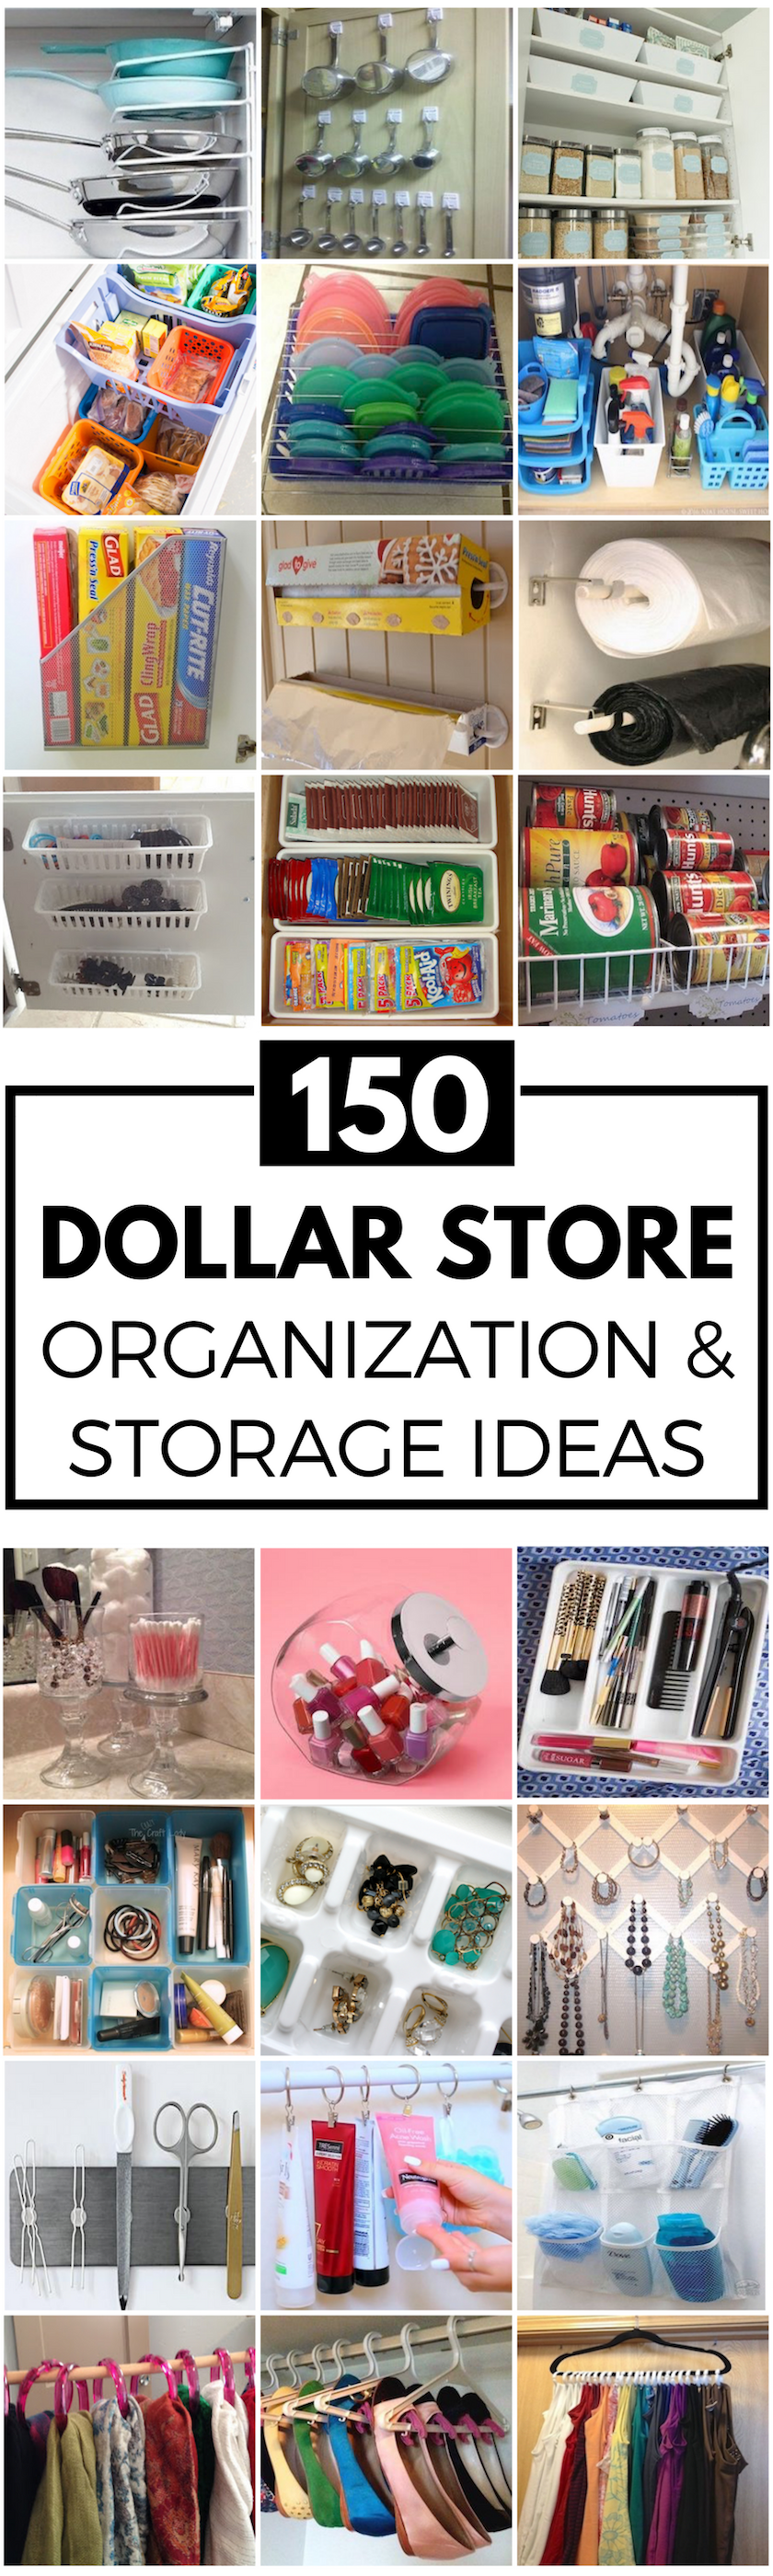 150 diy dollar store organization and storage ideas - prudent penny